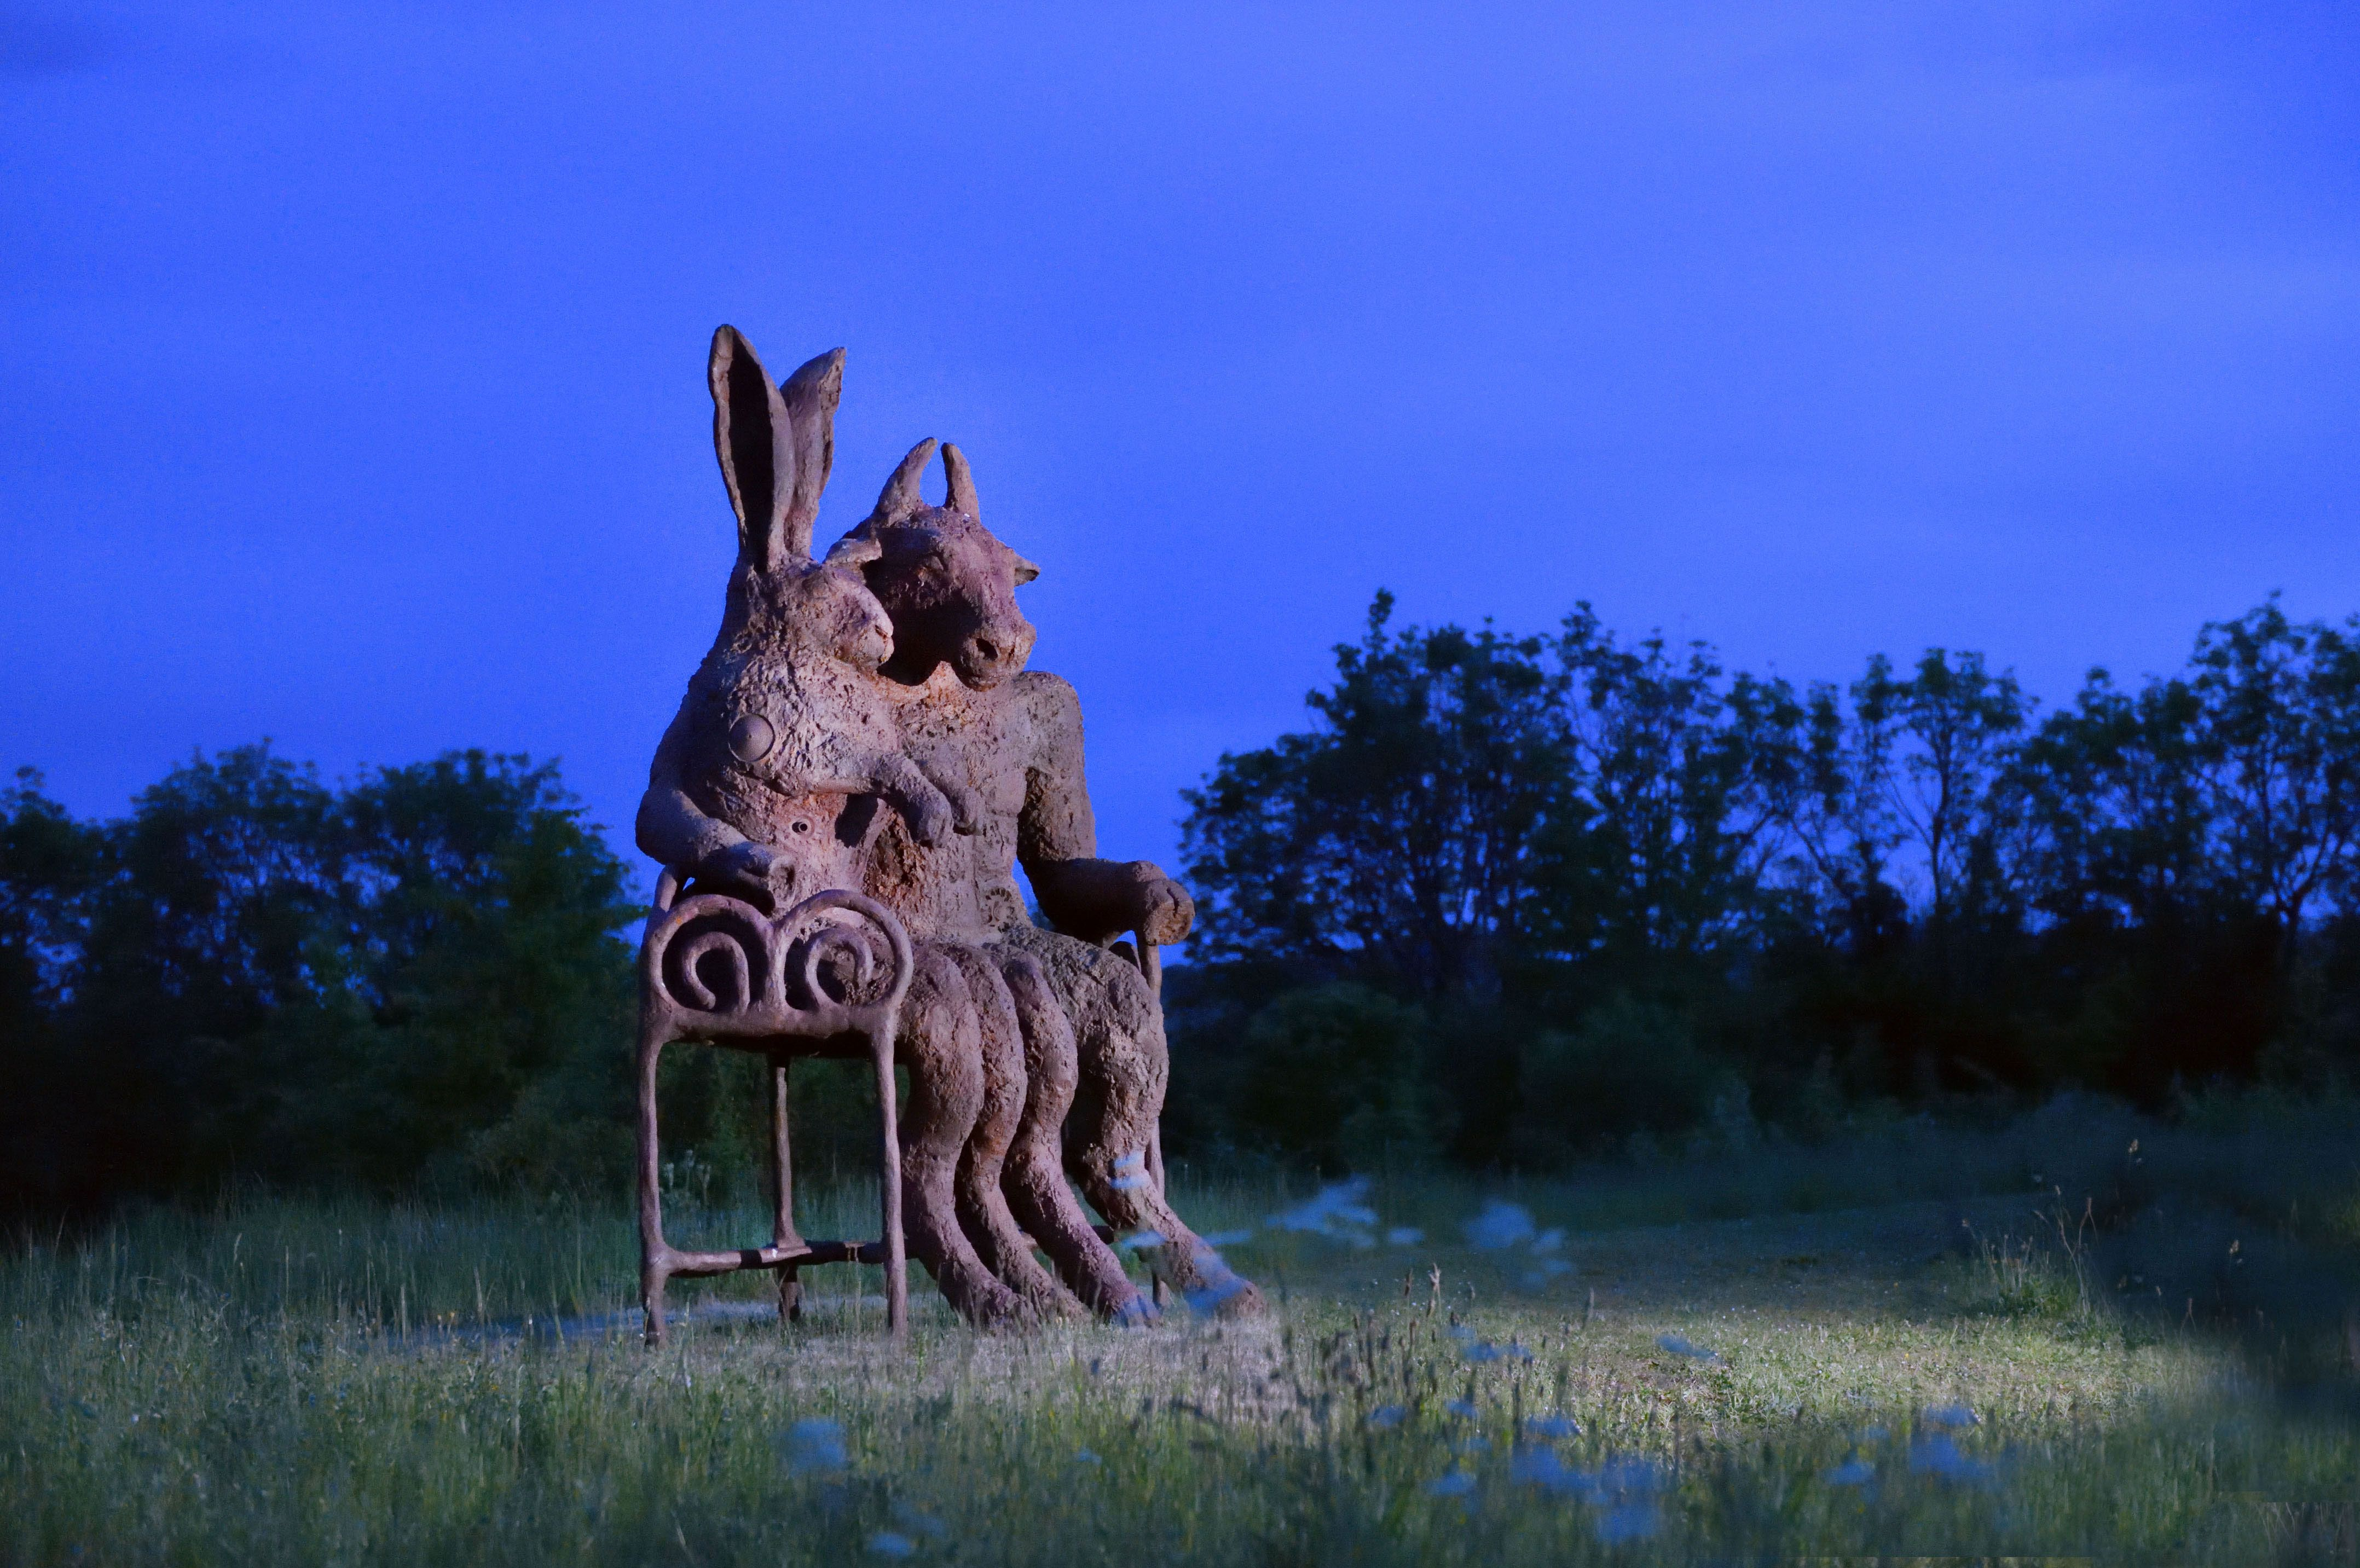 Dramatic sculptures go on show in St James's Square